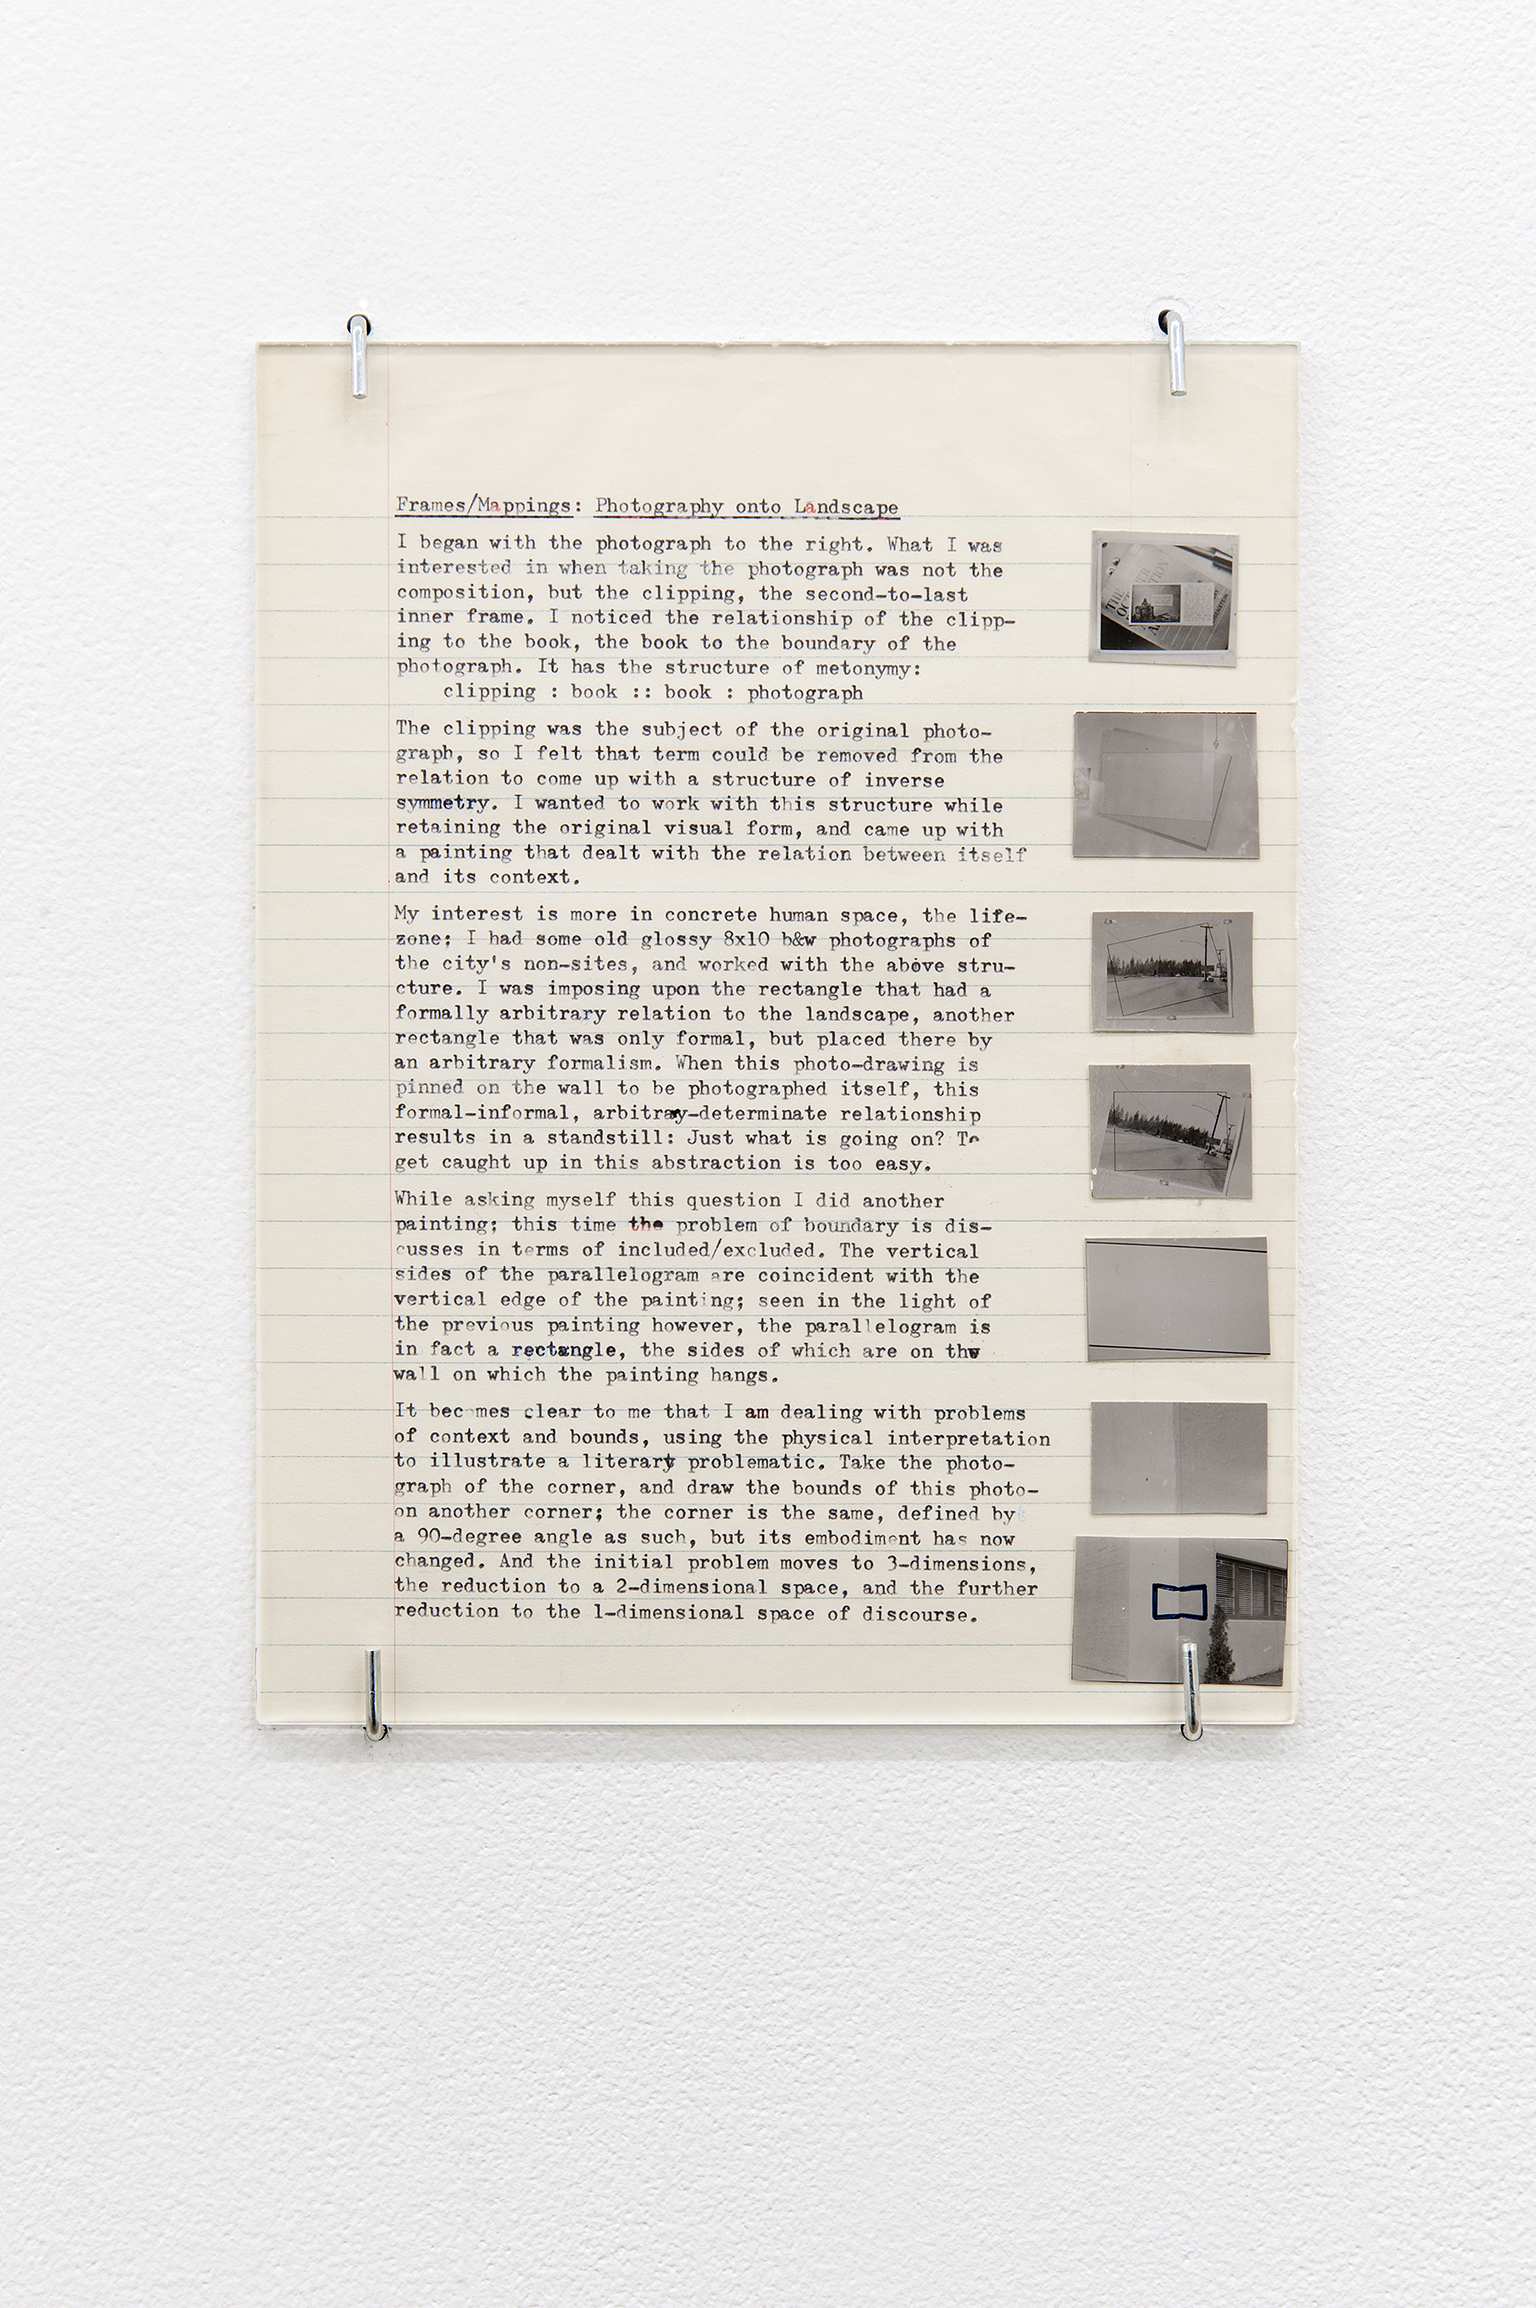 Robert Kleyn, Frames/Mappings: Photography onto Landscape, 1972, typescript, photographs on paper, 9 x 7 in. (23 x 18 cm)  ​ by